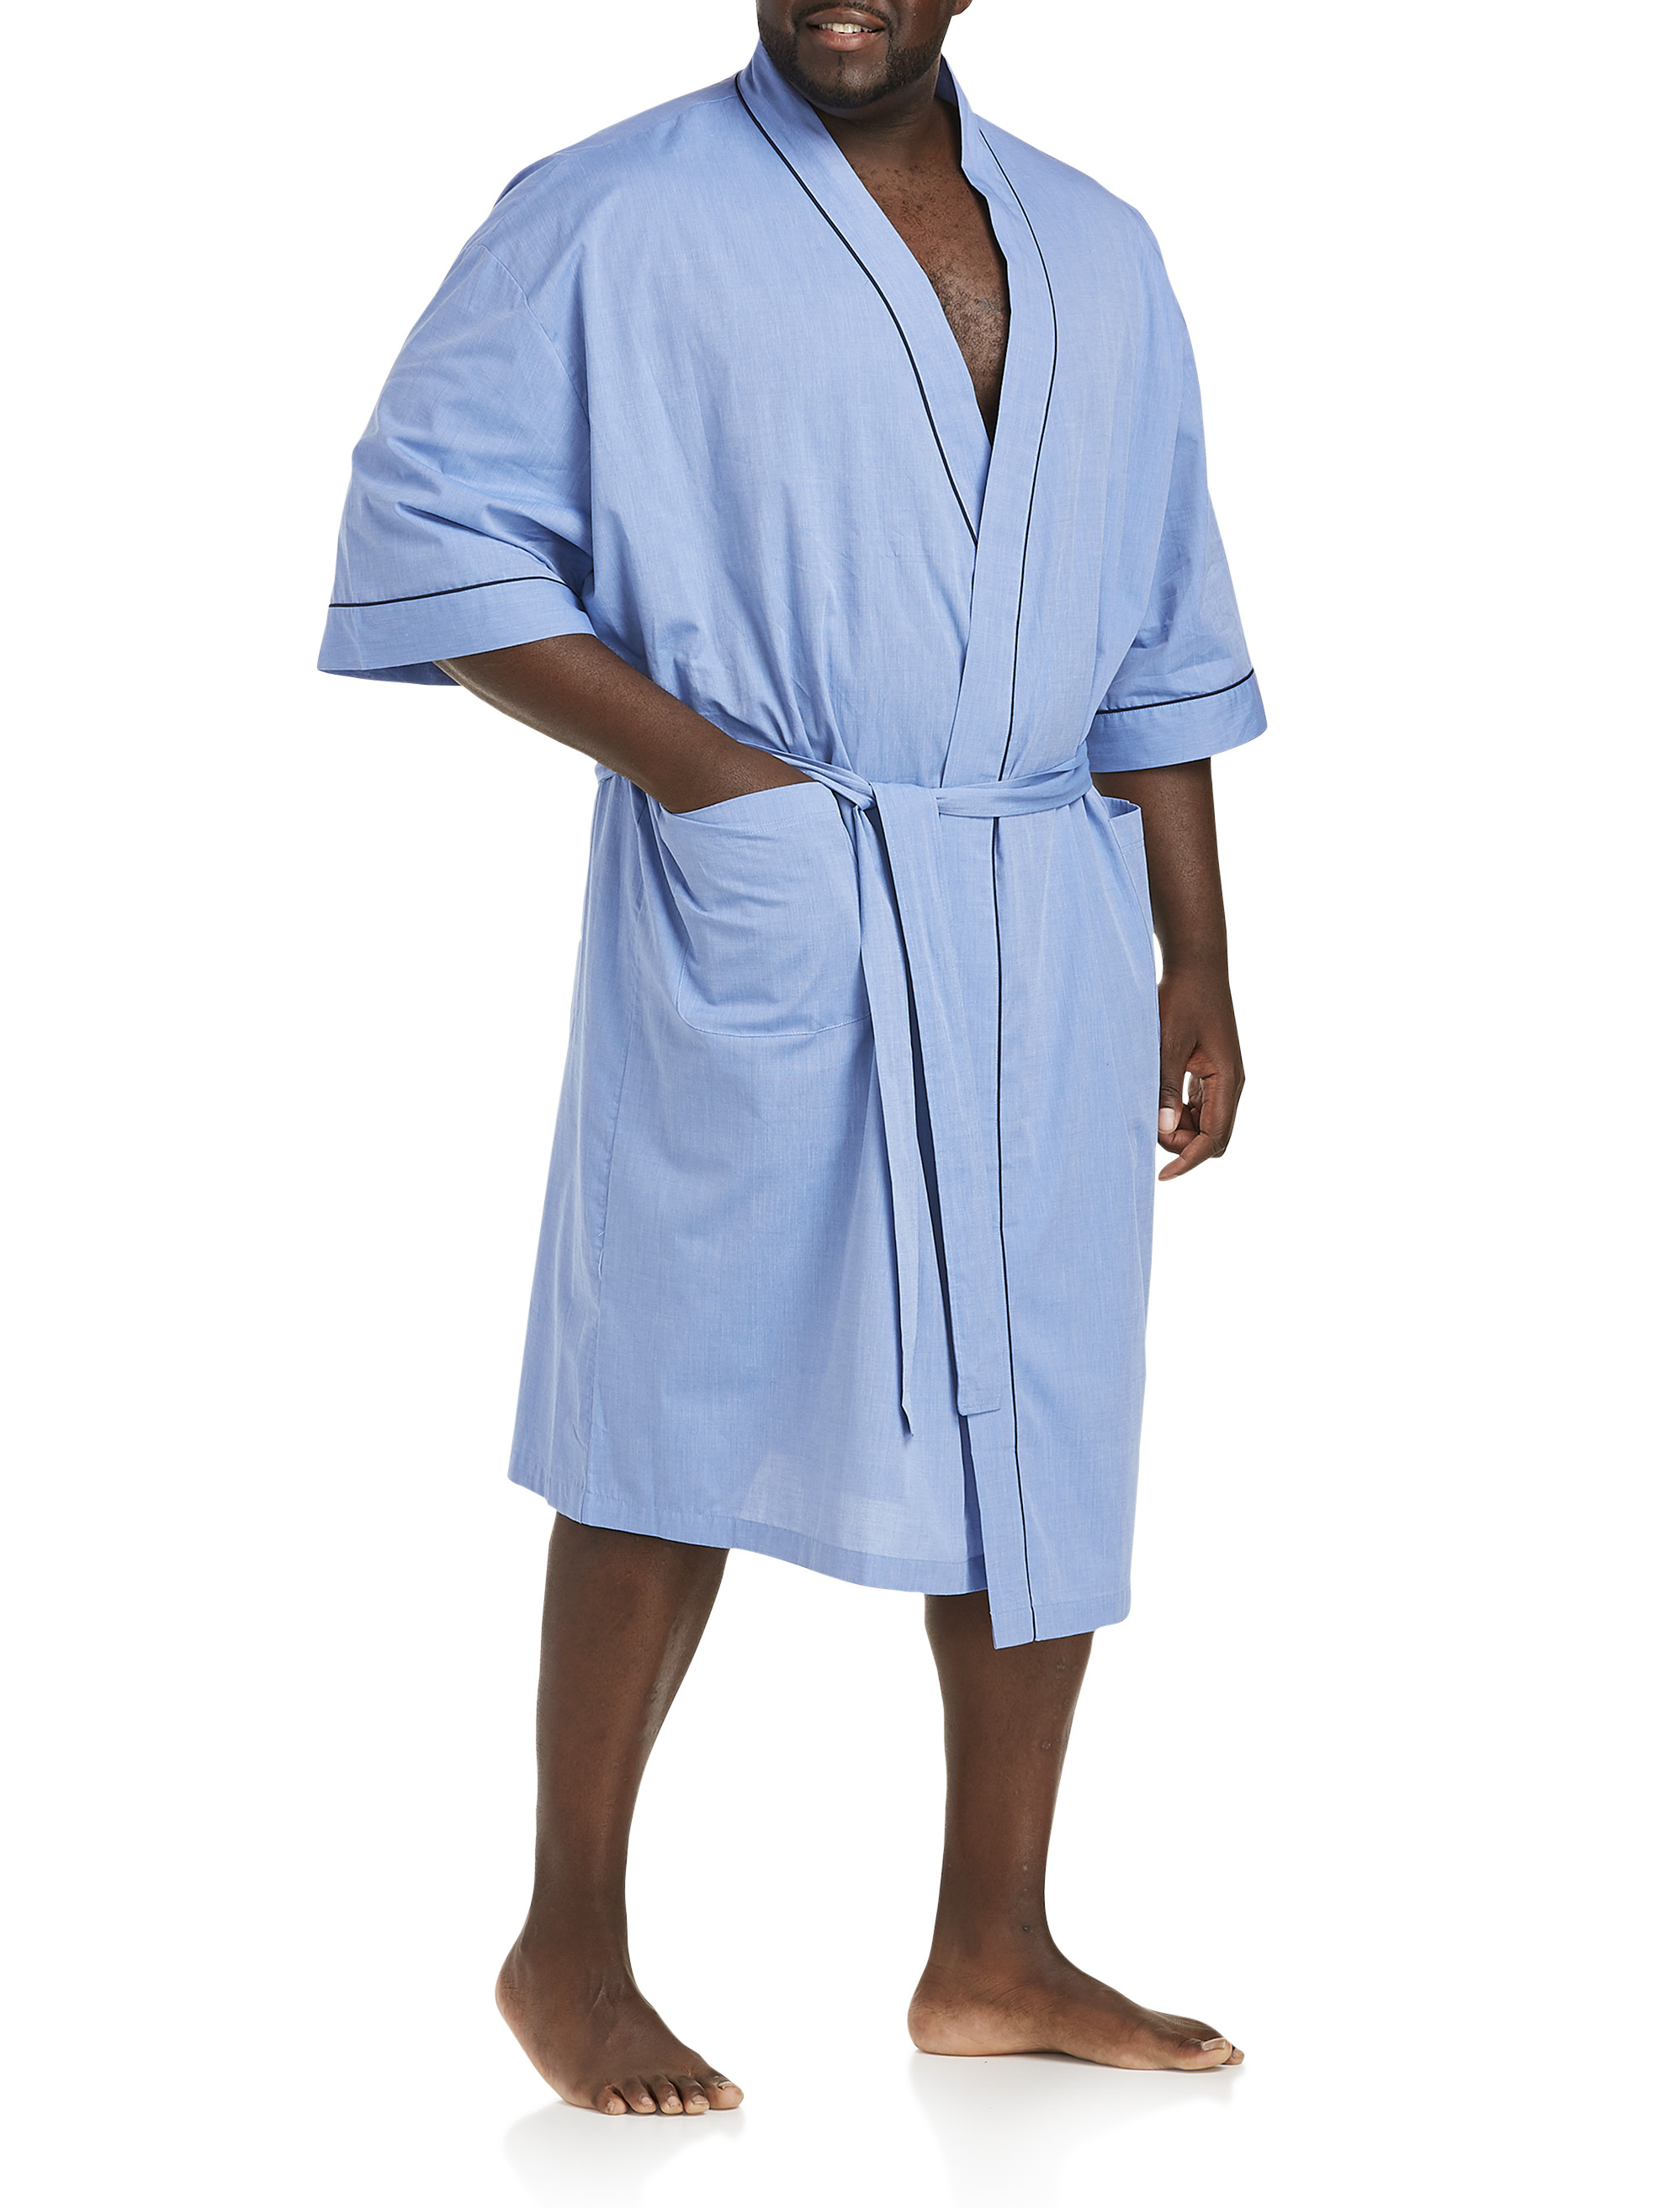 Find extended sizes for big & tall men. With sizes of 2X and 3X up to 6XL and XLT. Sleepwear Footwear Sale View All Footwear & Accessories. Footwear Watches Bags & Wallets Scarves Luggage & Travel Umbrellas Features. Heritage Collection Spinnaker Collection Getaway Collection.